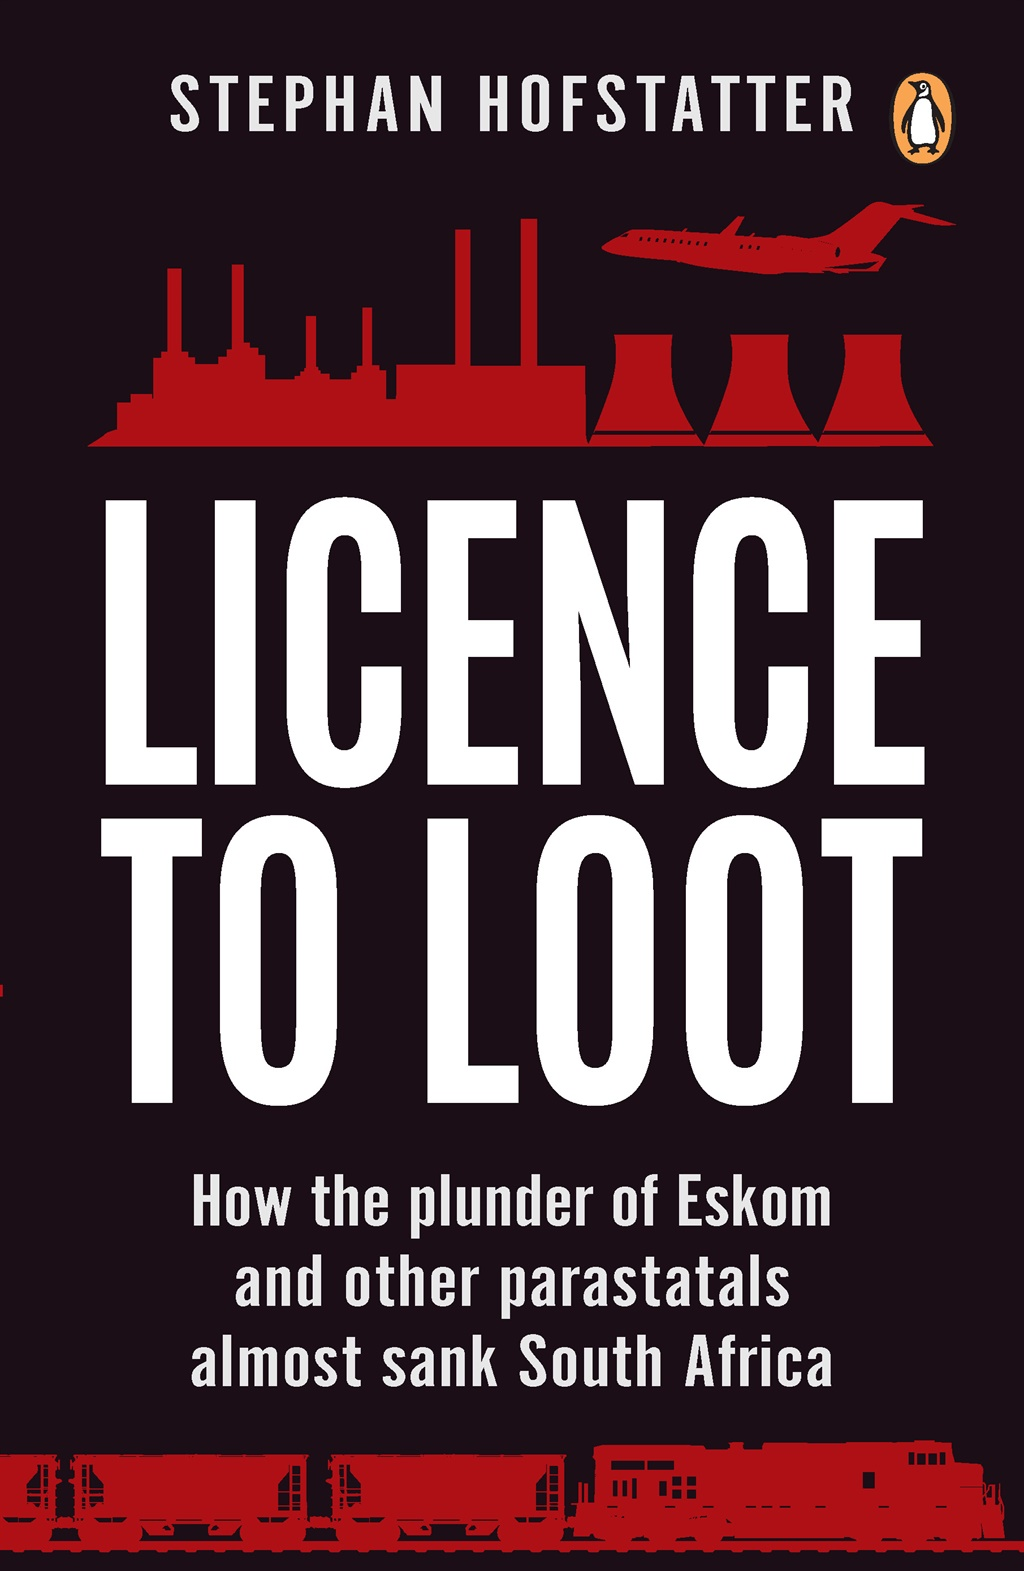 Licence to Loot: How the plunder of Eskom and other parastatals almost sank South Africa by Stephan Hofstatter, published by Penguin Random House.